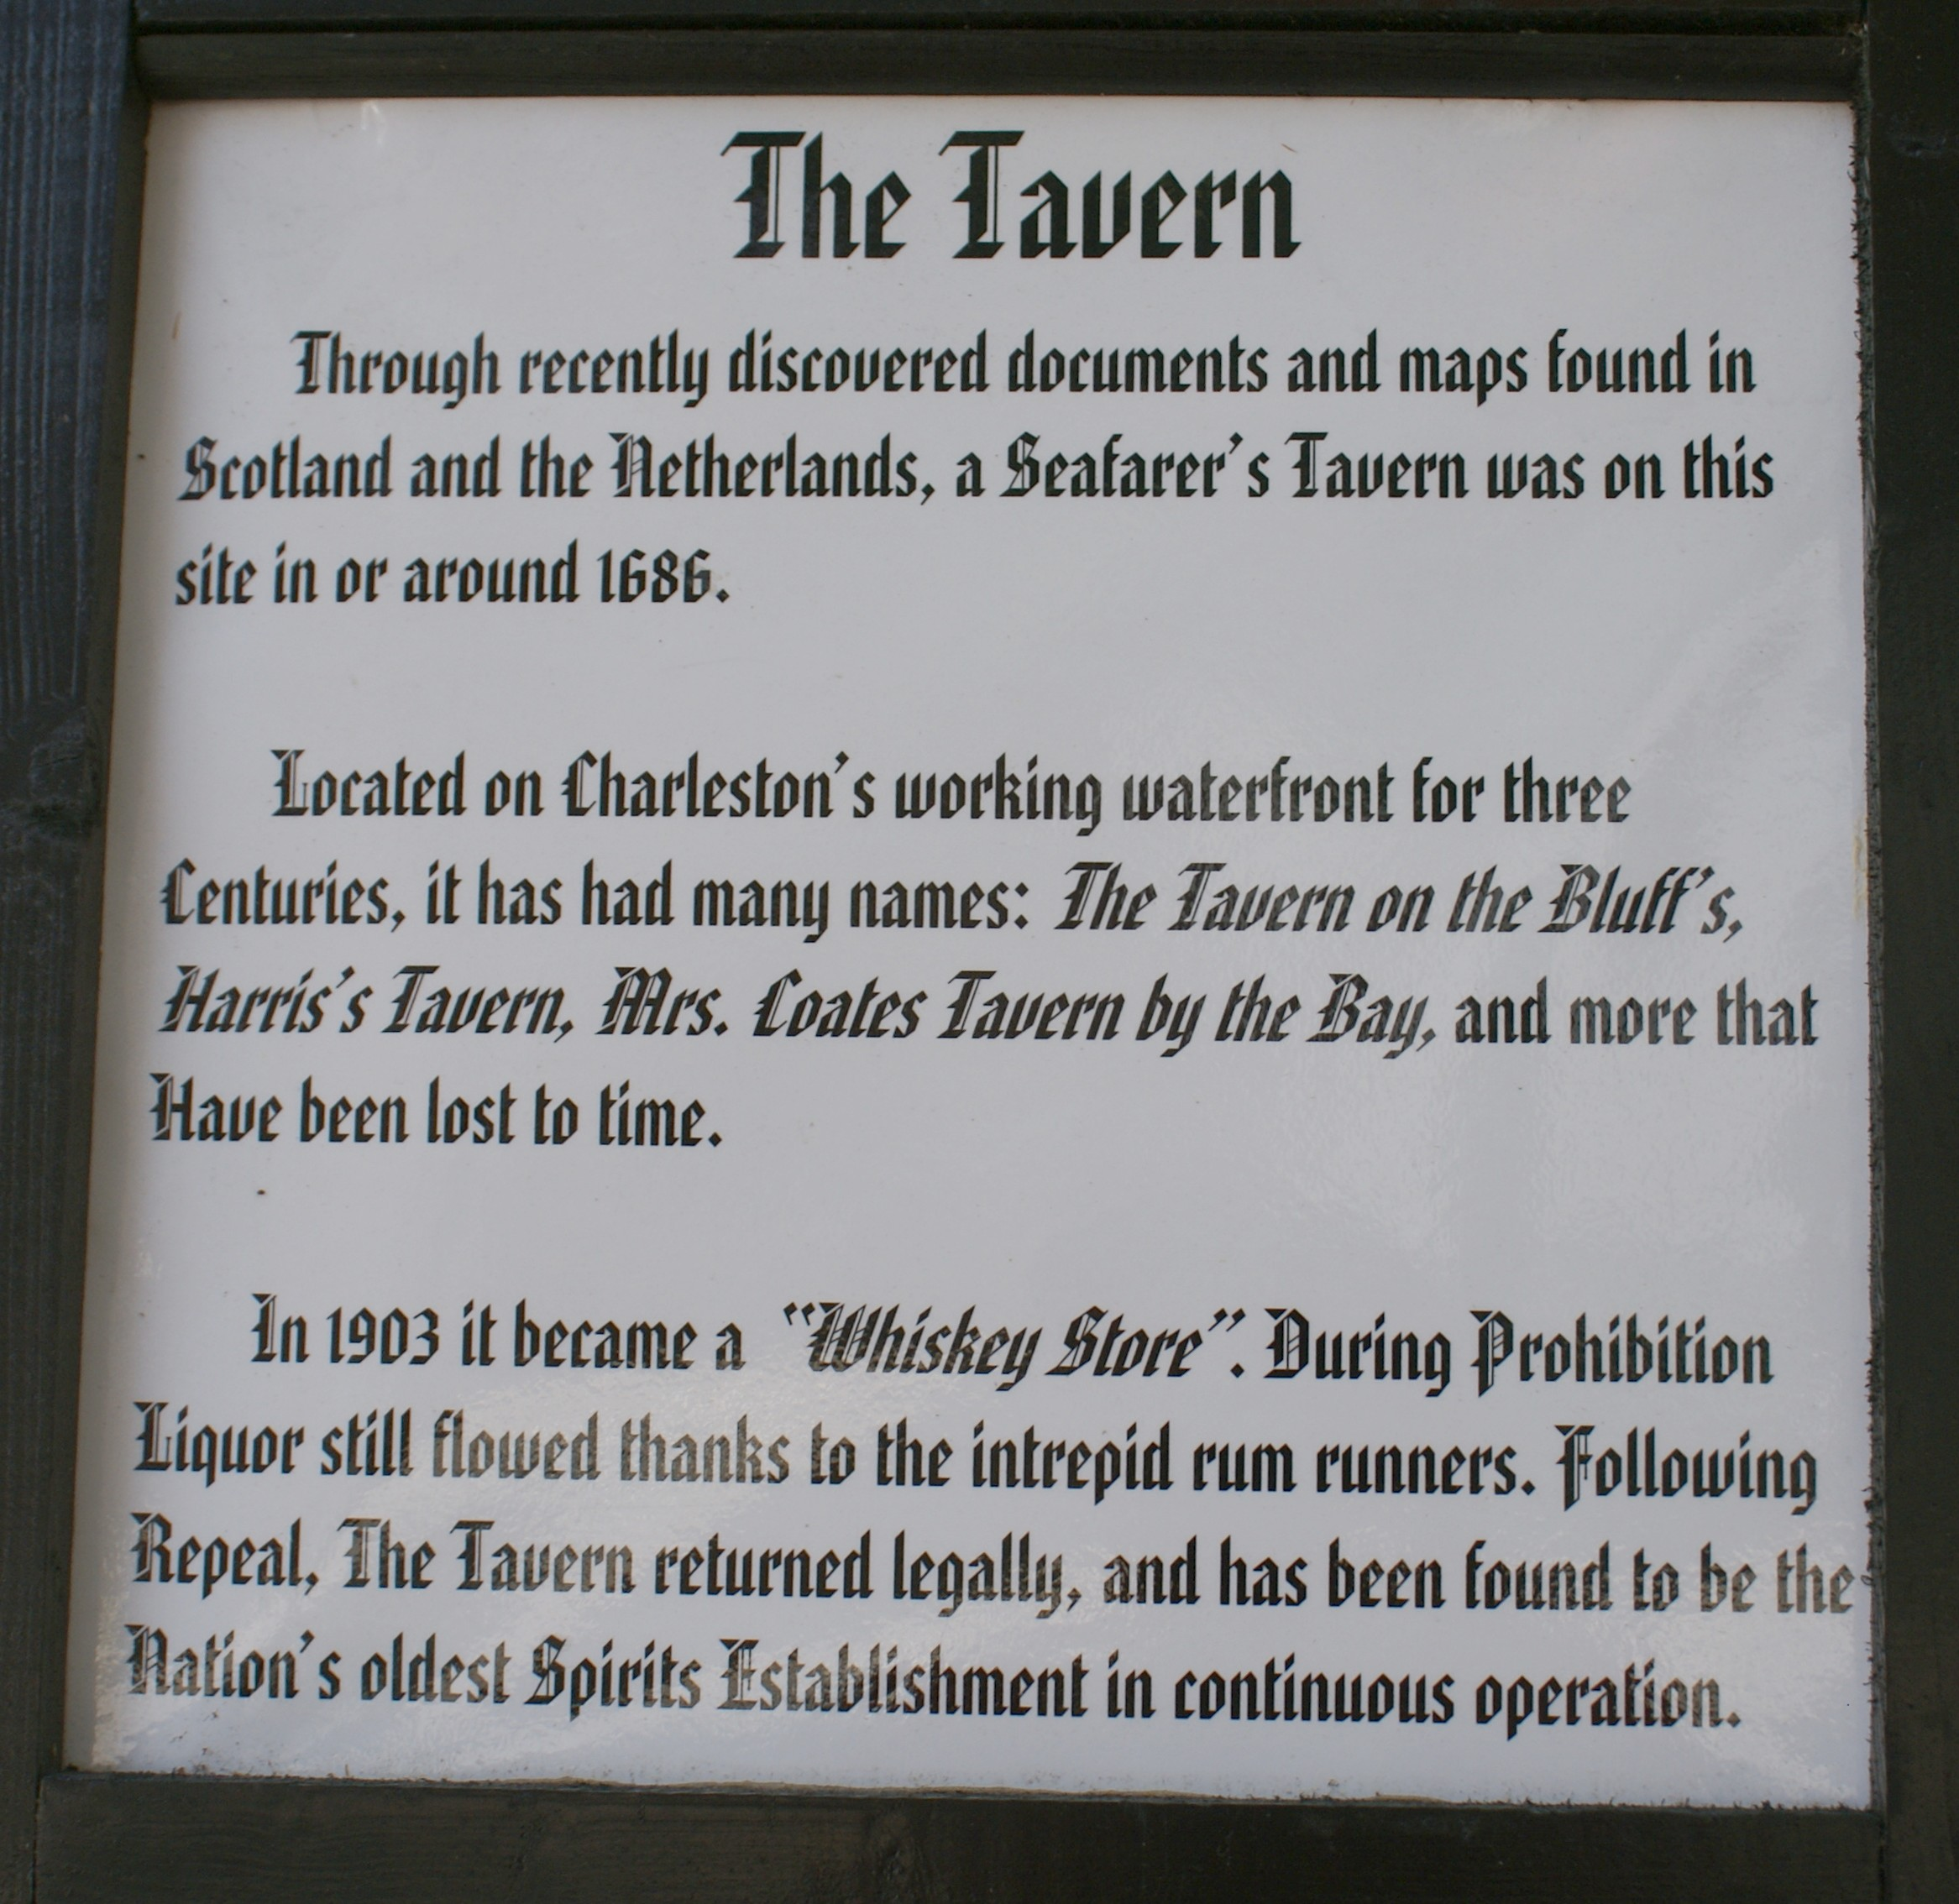 History of the Tavern